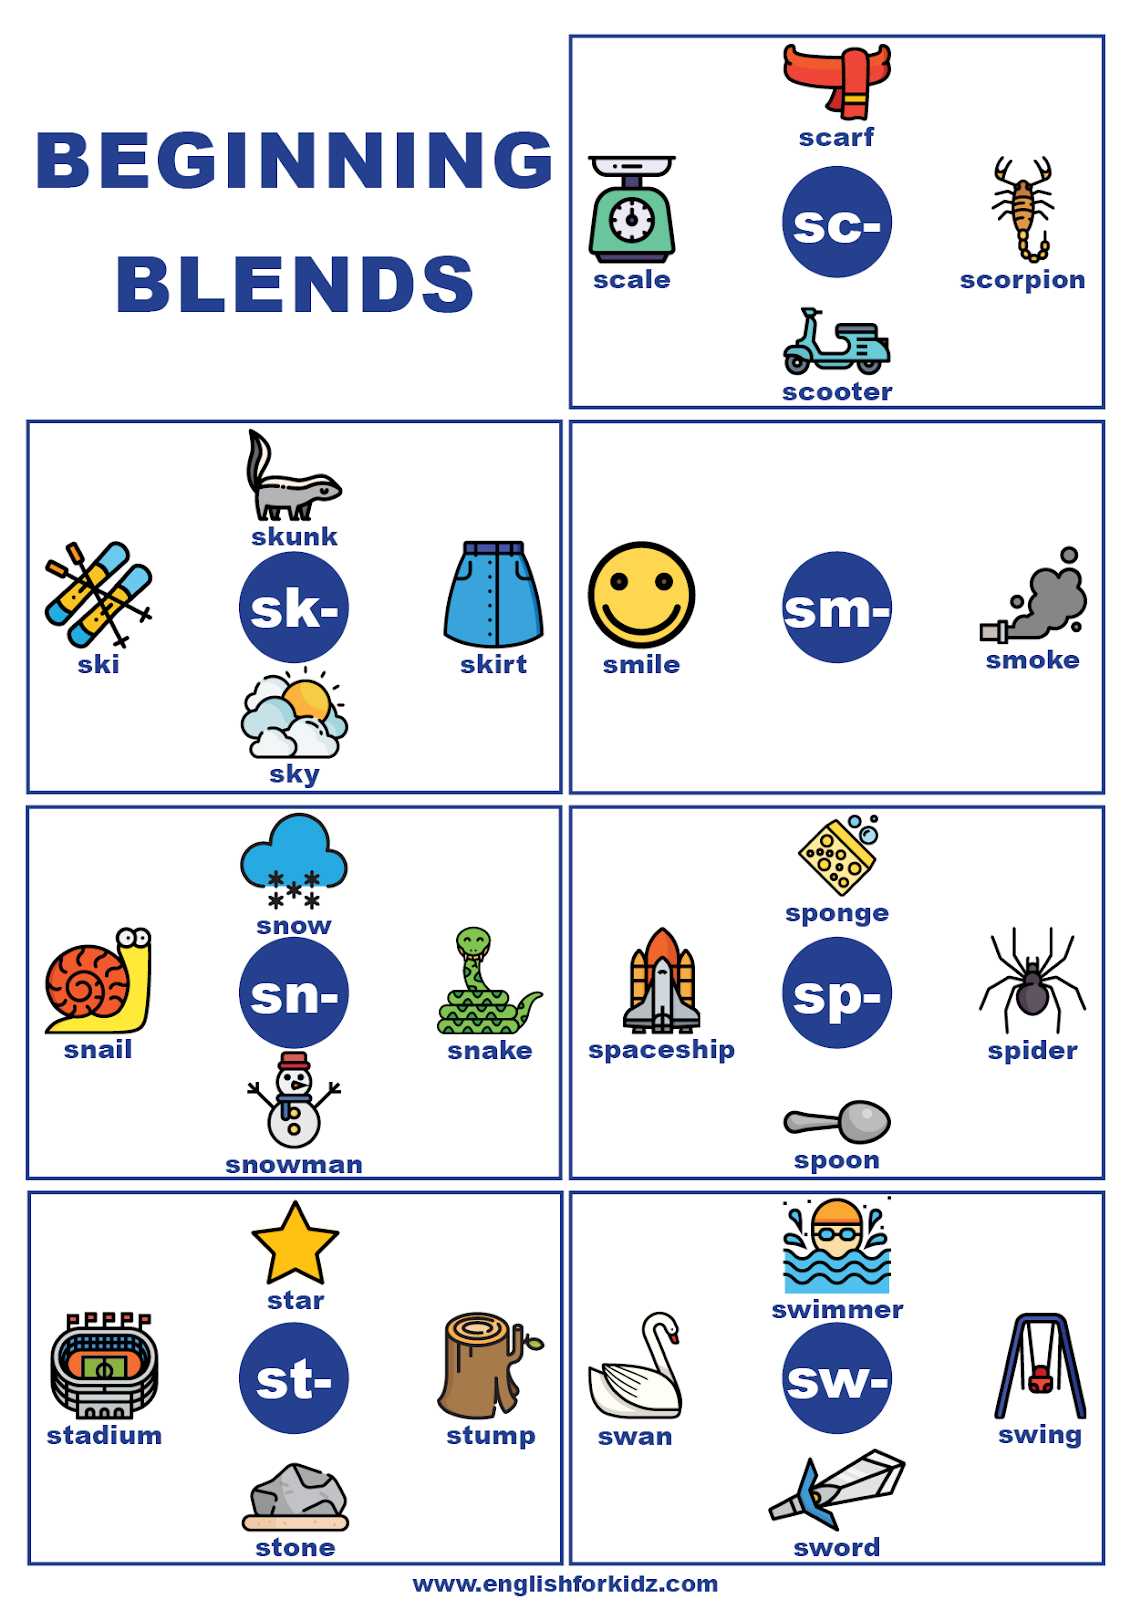 8 Best Images of Blends And Digraphs Chart Printable ... |Printable Blends Charts